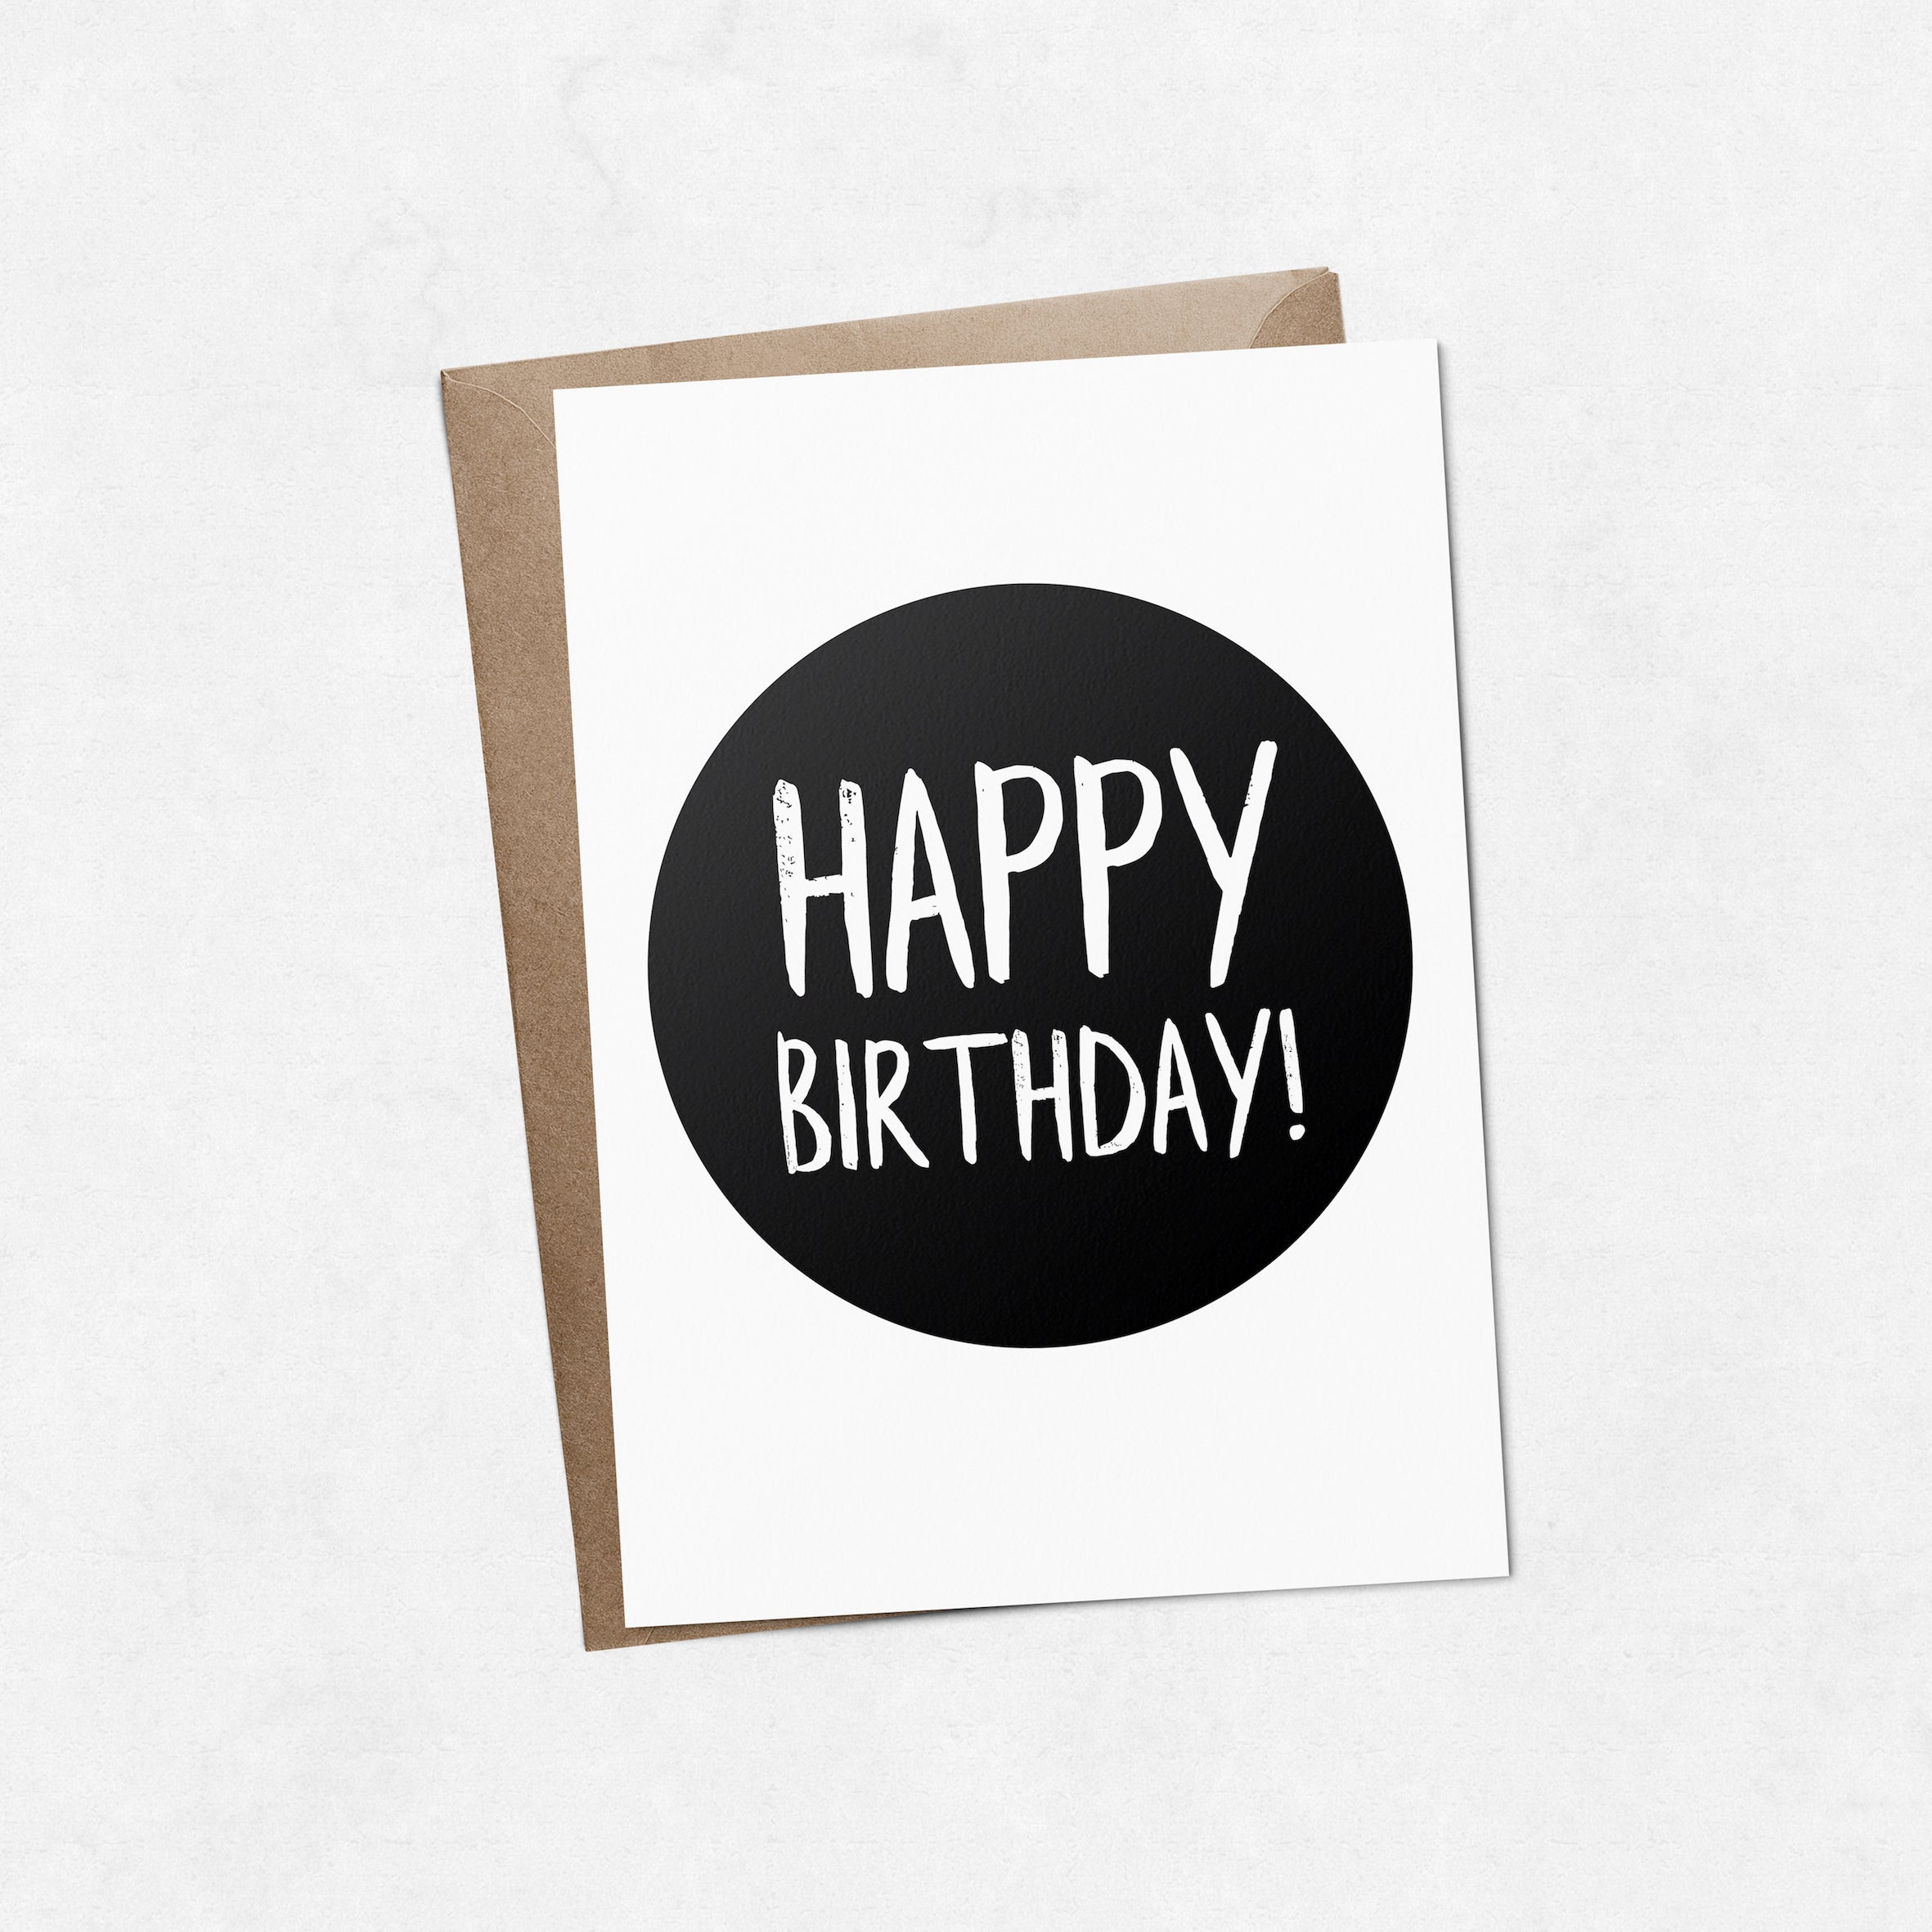 'Happy birthday' on black brush letter A6 greeting card | ink & white